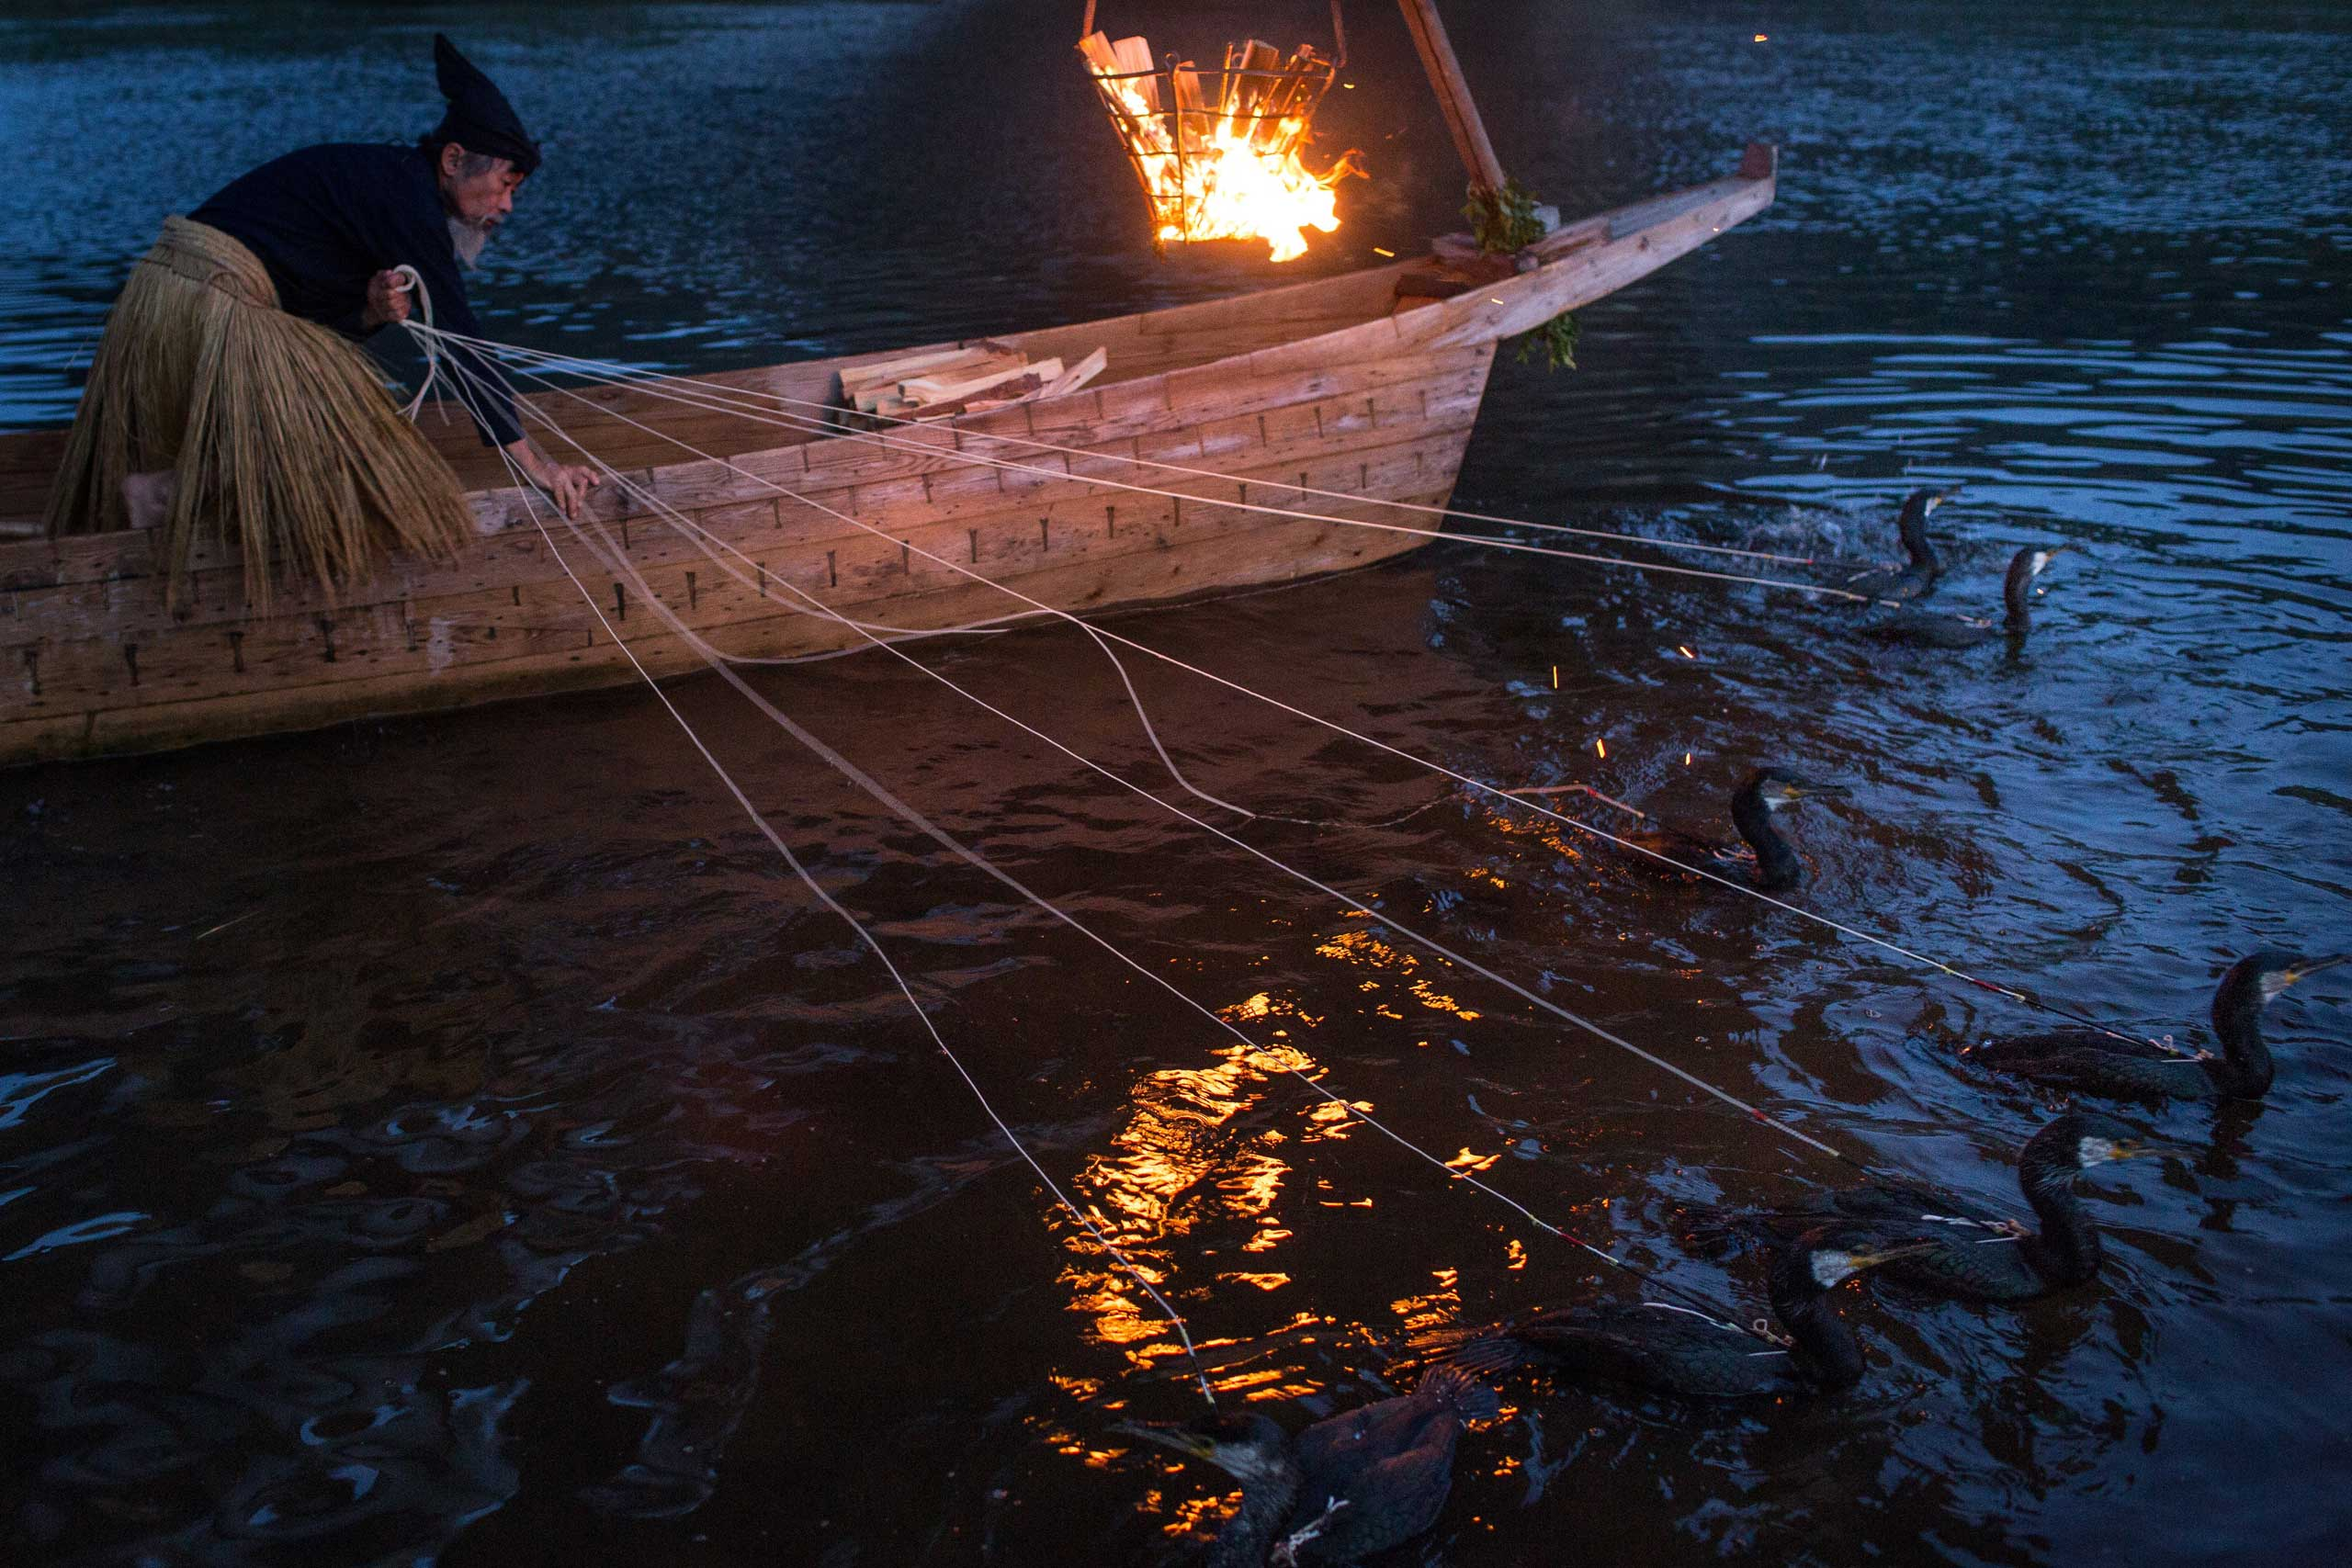 A cormorant master prepares sea cormorants in Gifu, Japan, July 2, 2014.